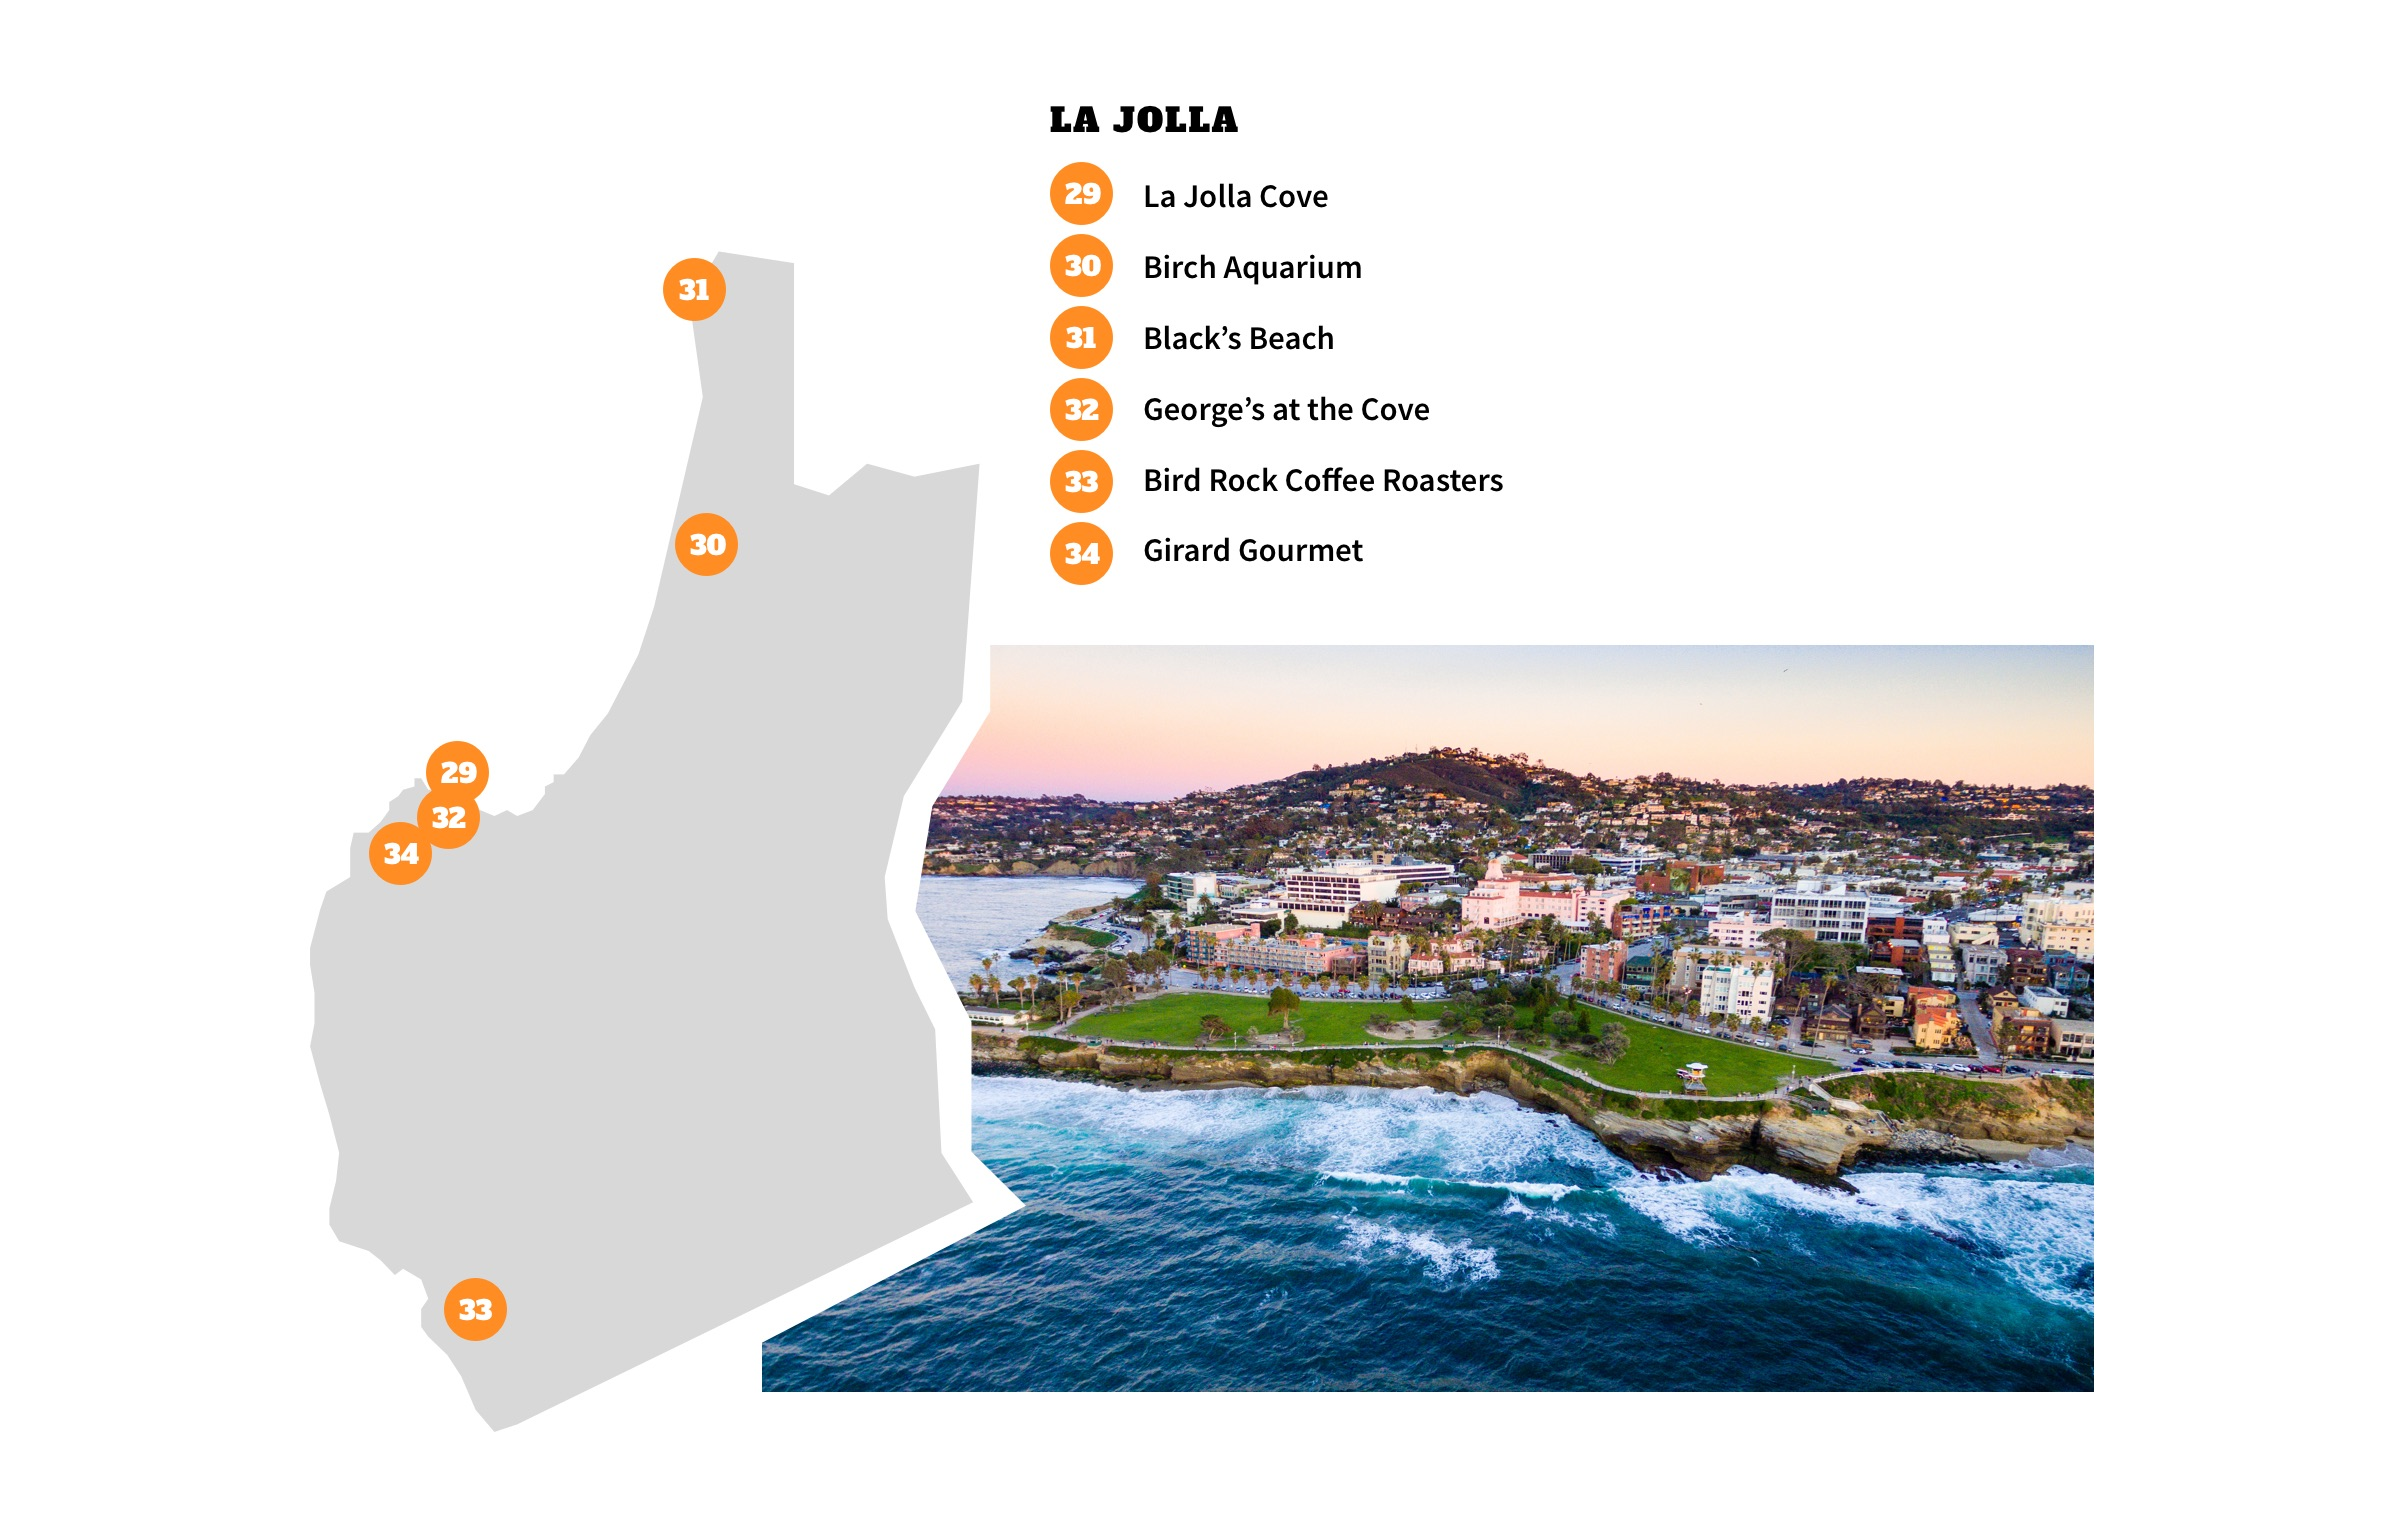 La Jolla, San Diego Neighborhood Map